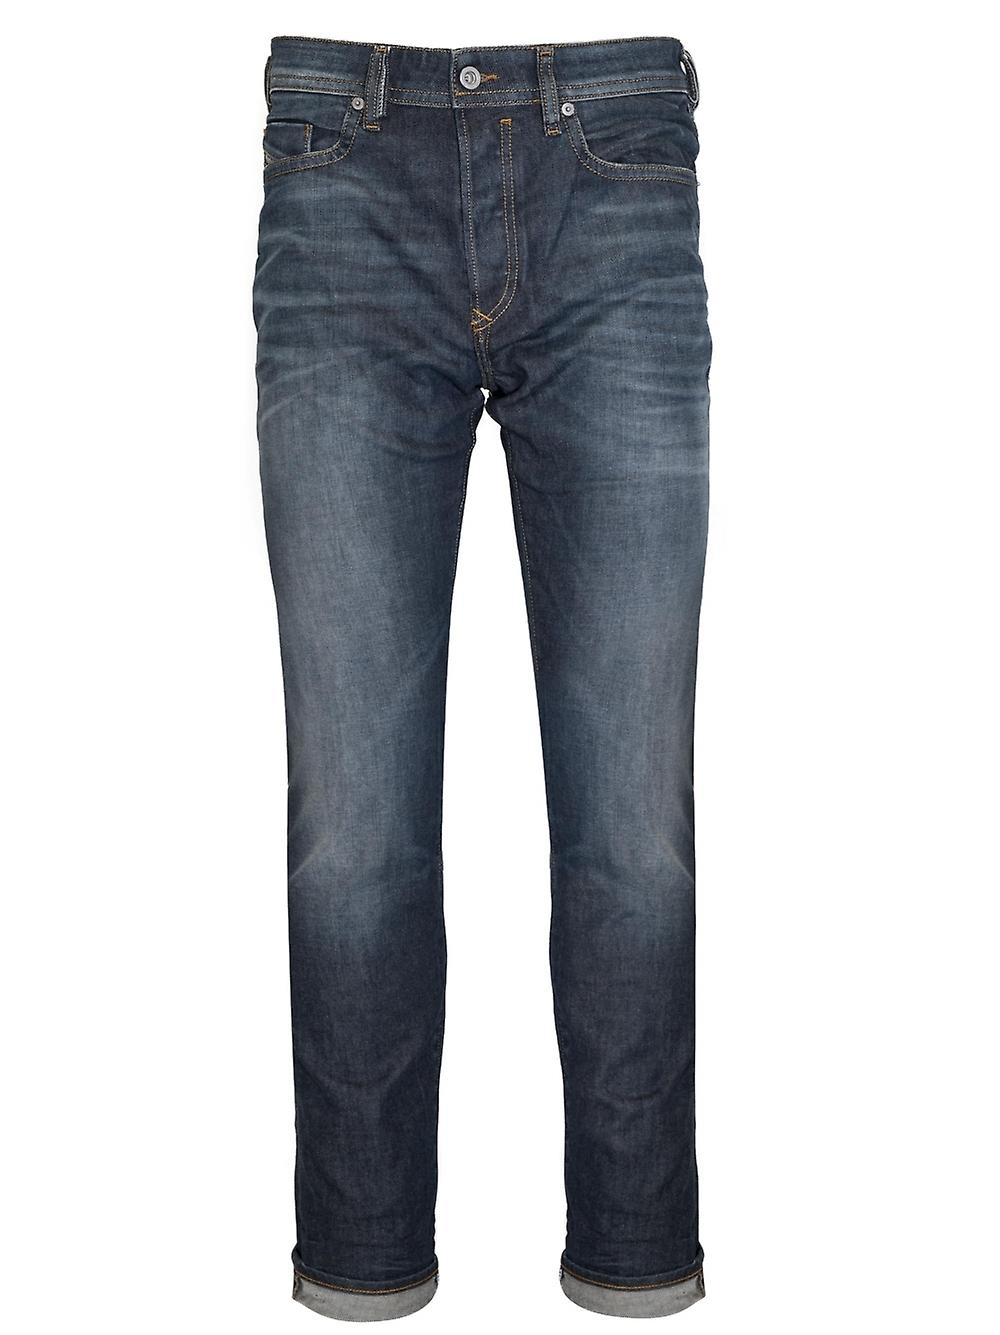 Diesel Diesel Regular Slim Fit Buster Blue Wash Jean